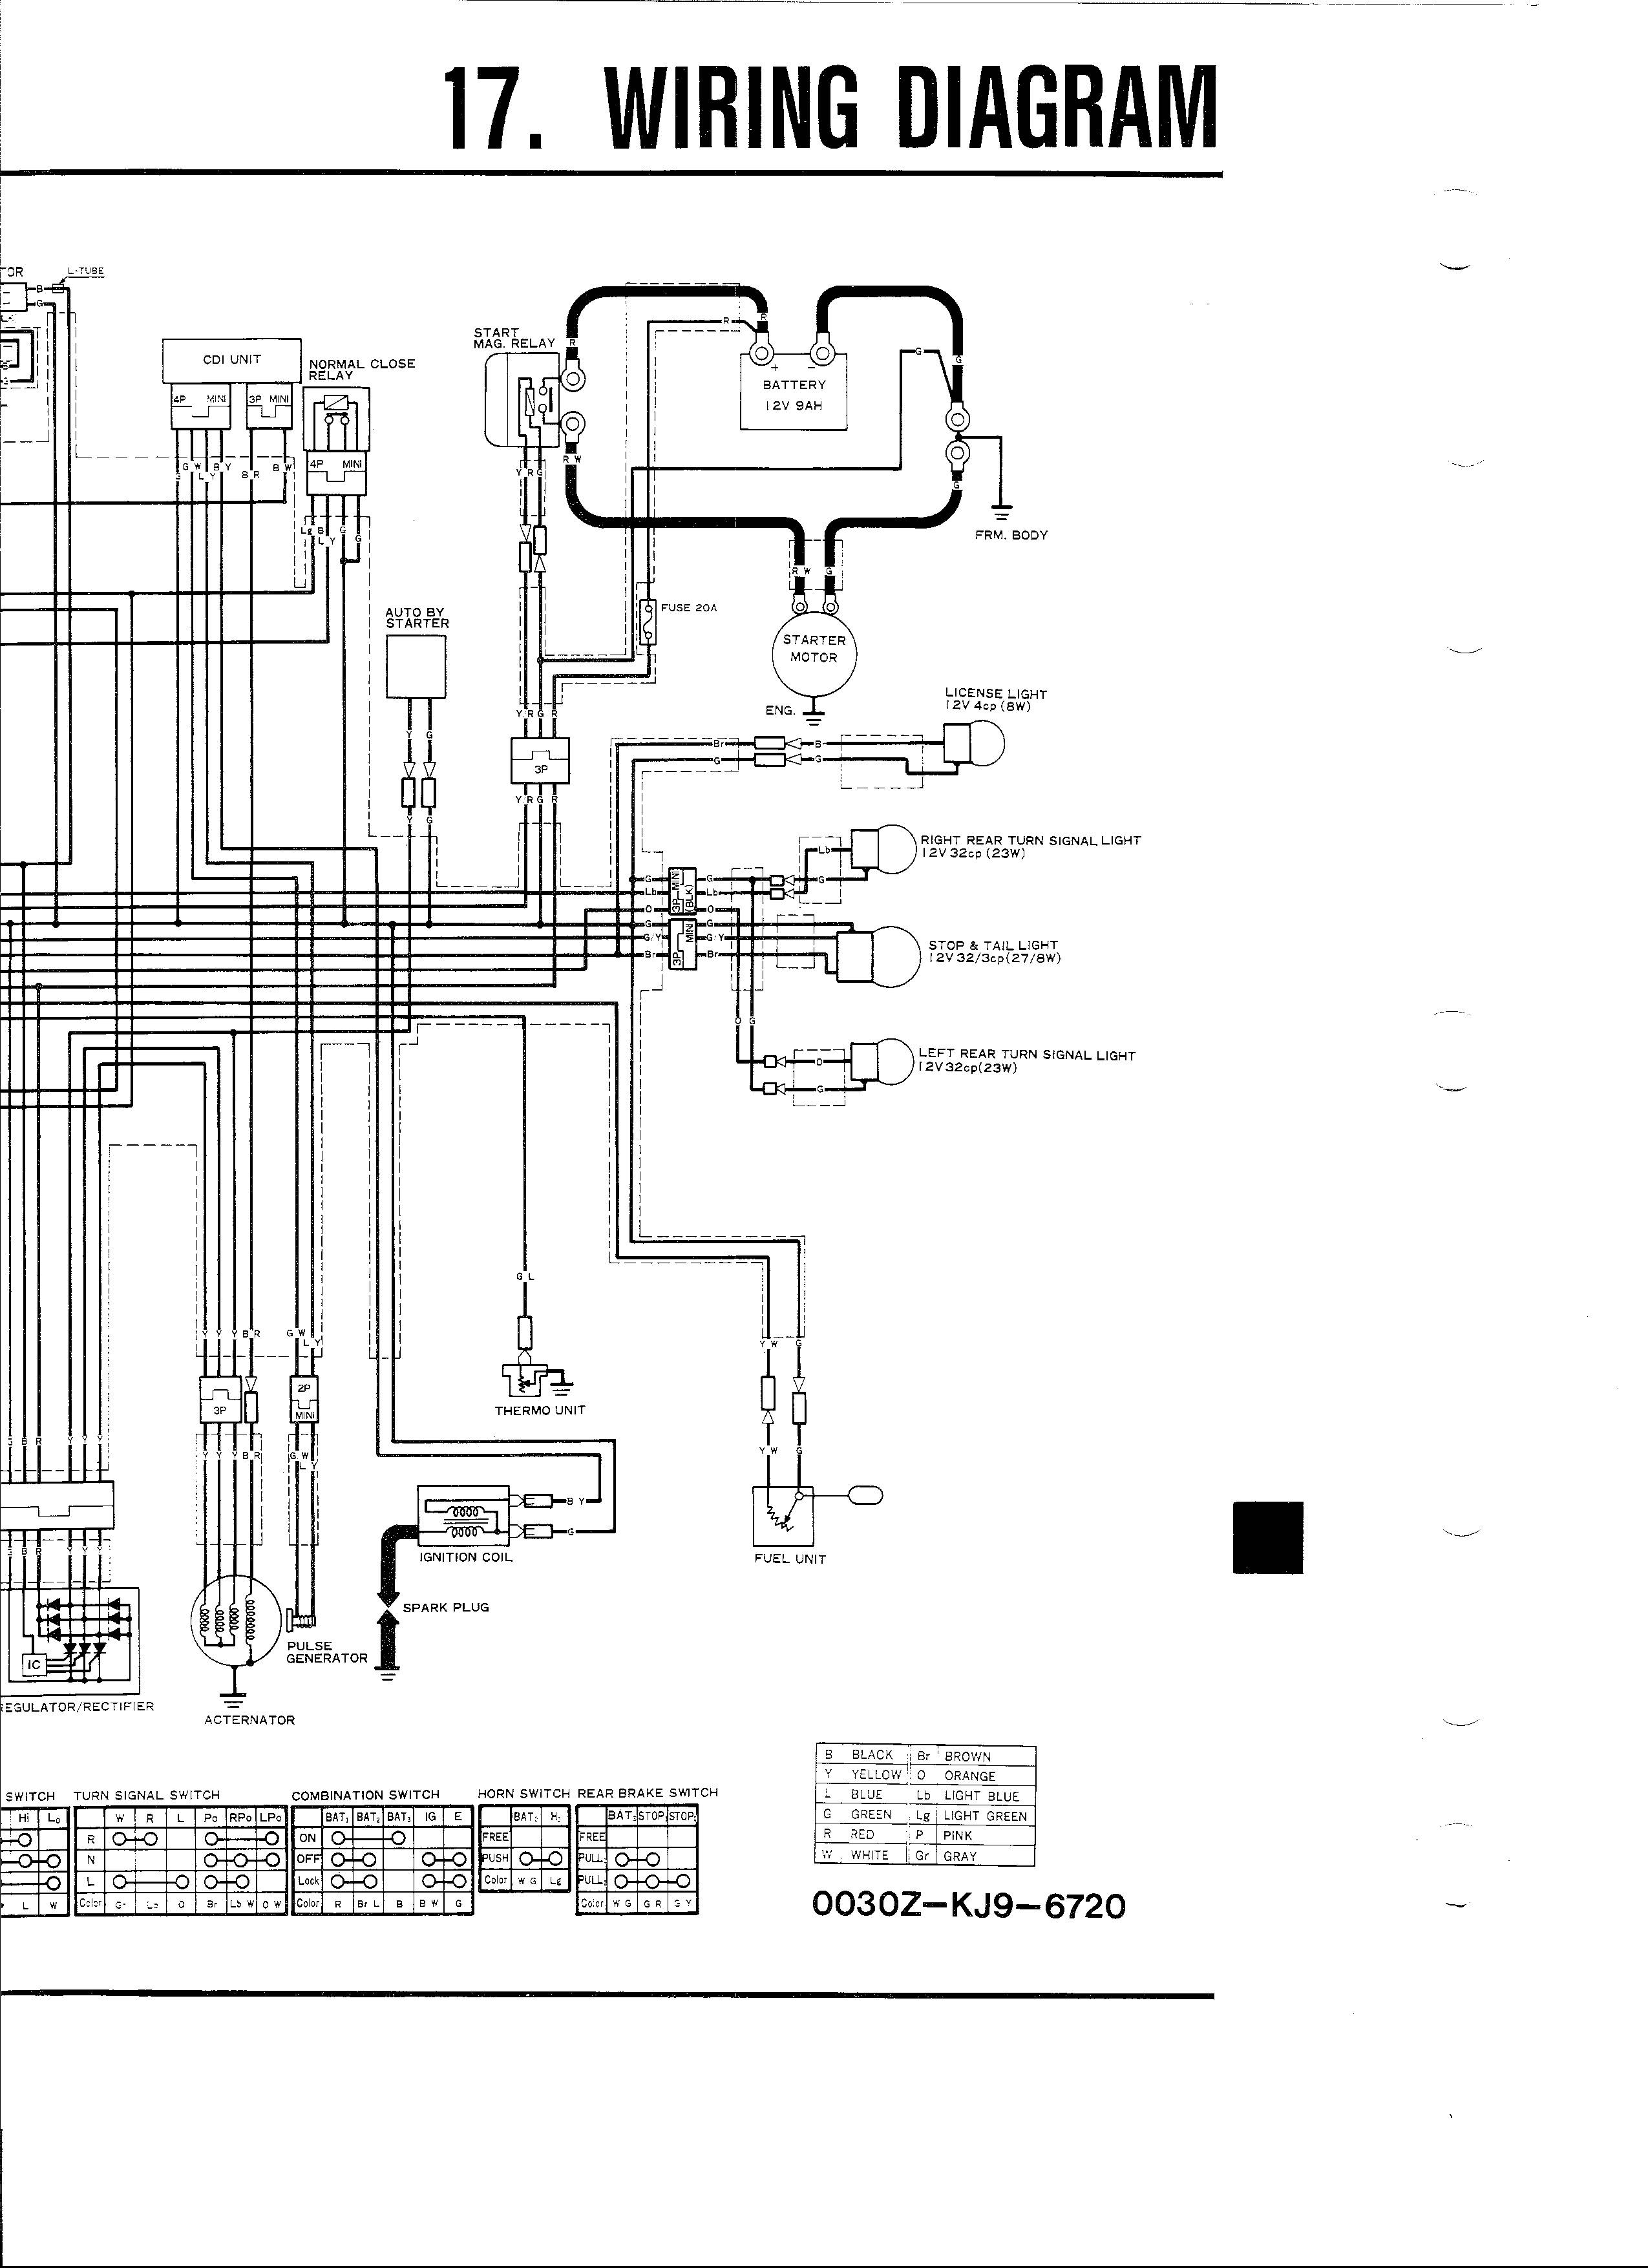 Titan Motorcycle Wiring Diagram Auto Electrical Honda Ch125 26 Images